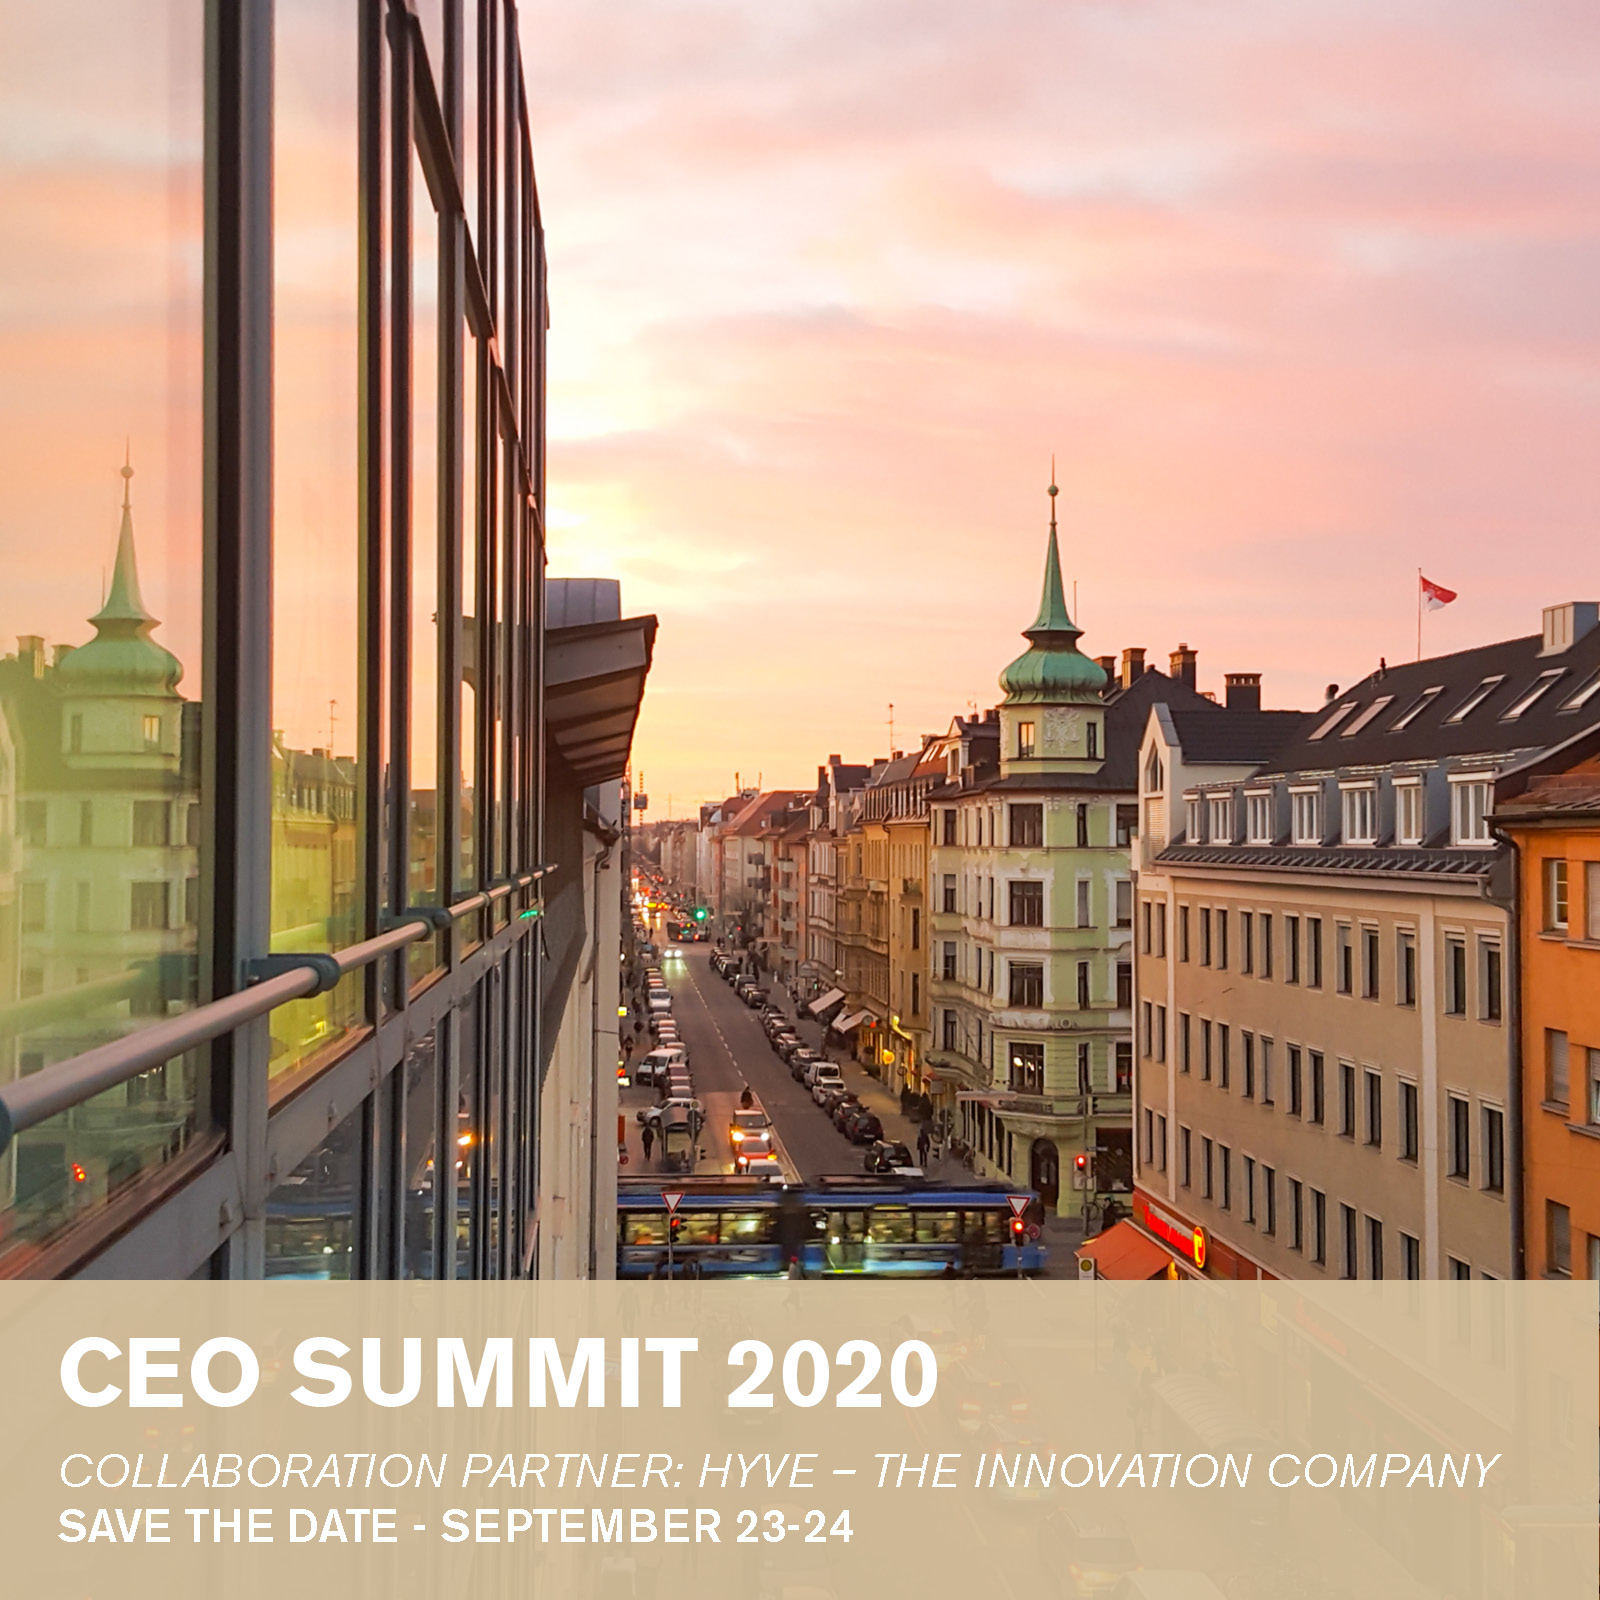 CEO summit 2020 Save the date